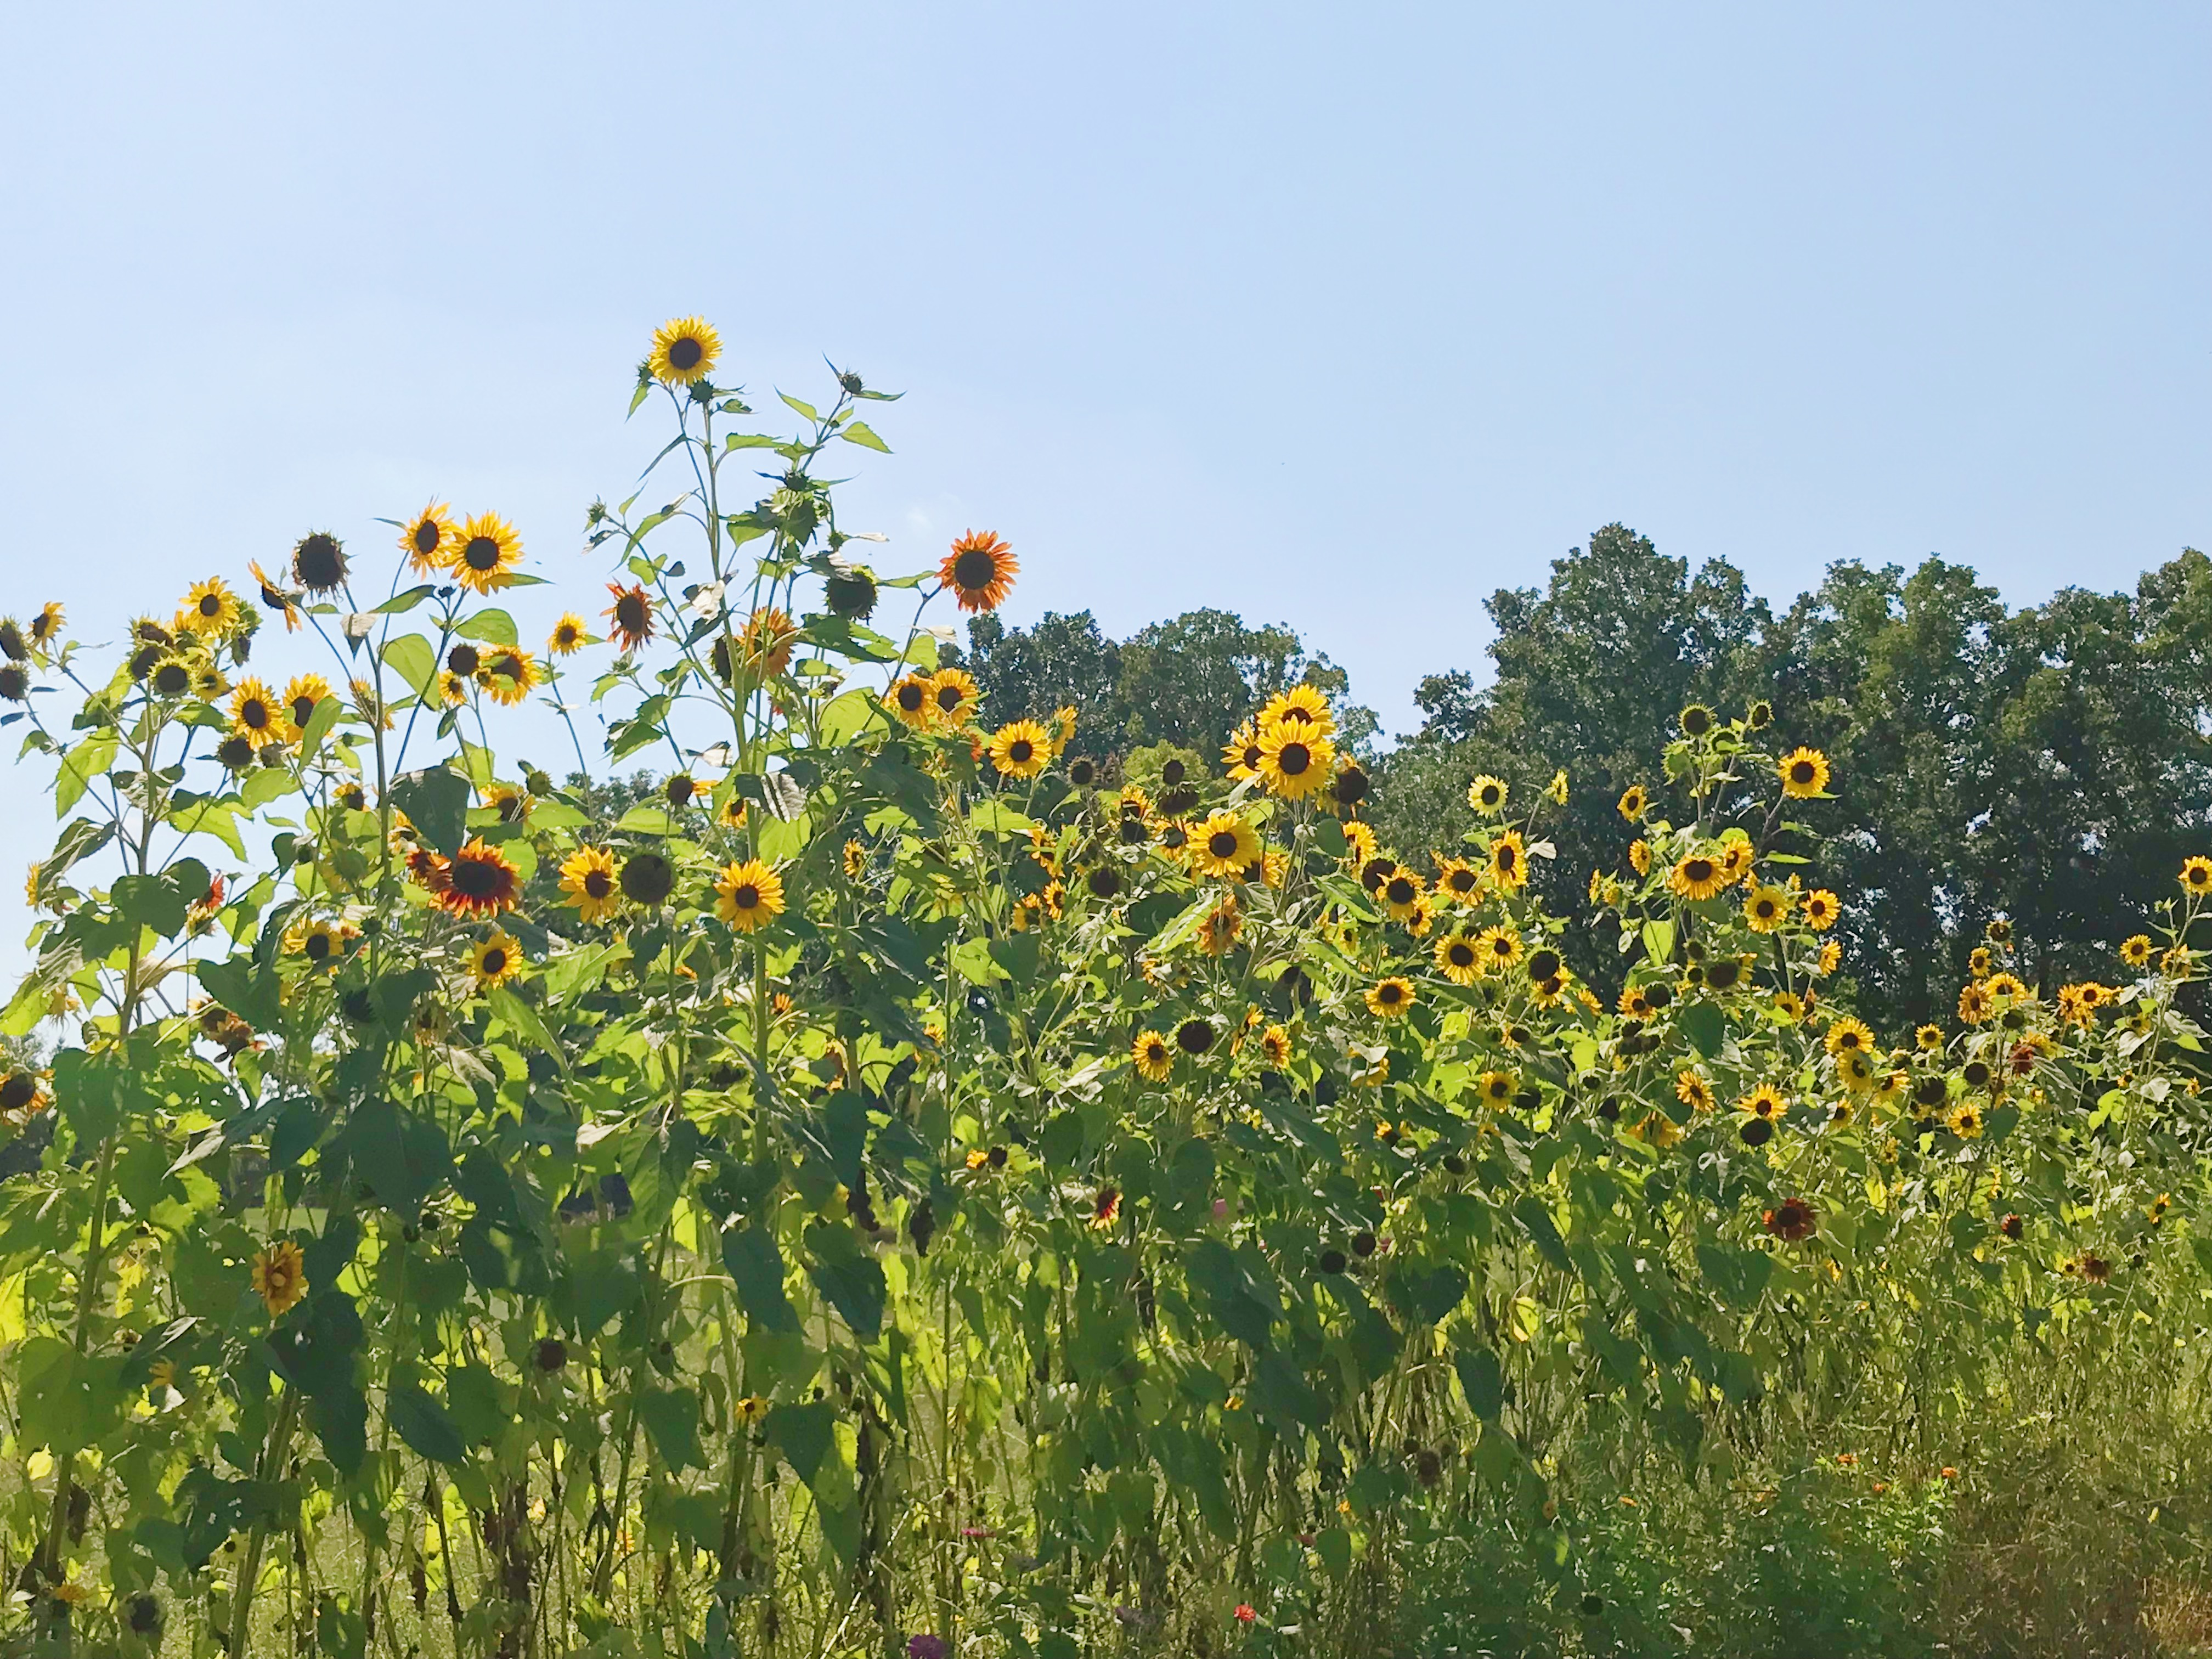 Rows of sunflowers at Tamchop Farm